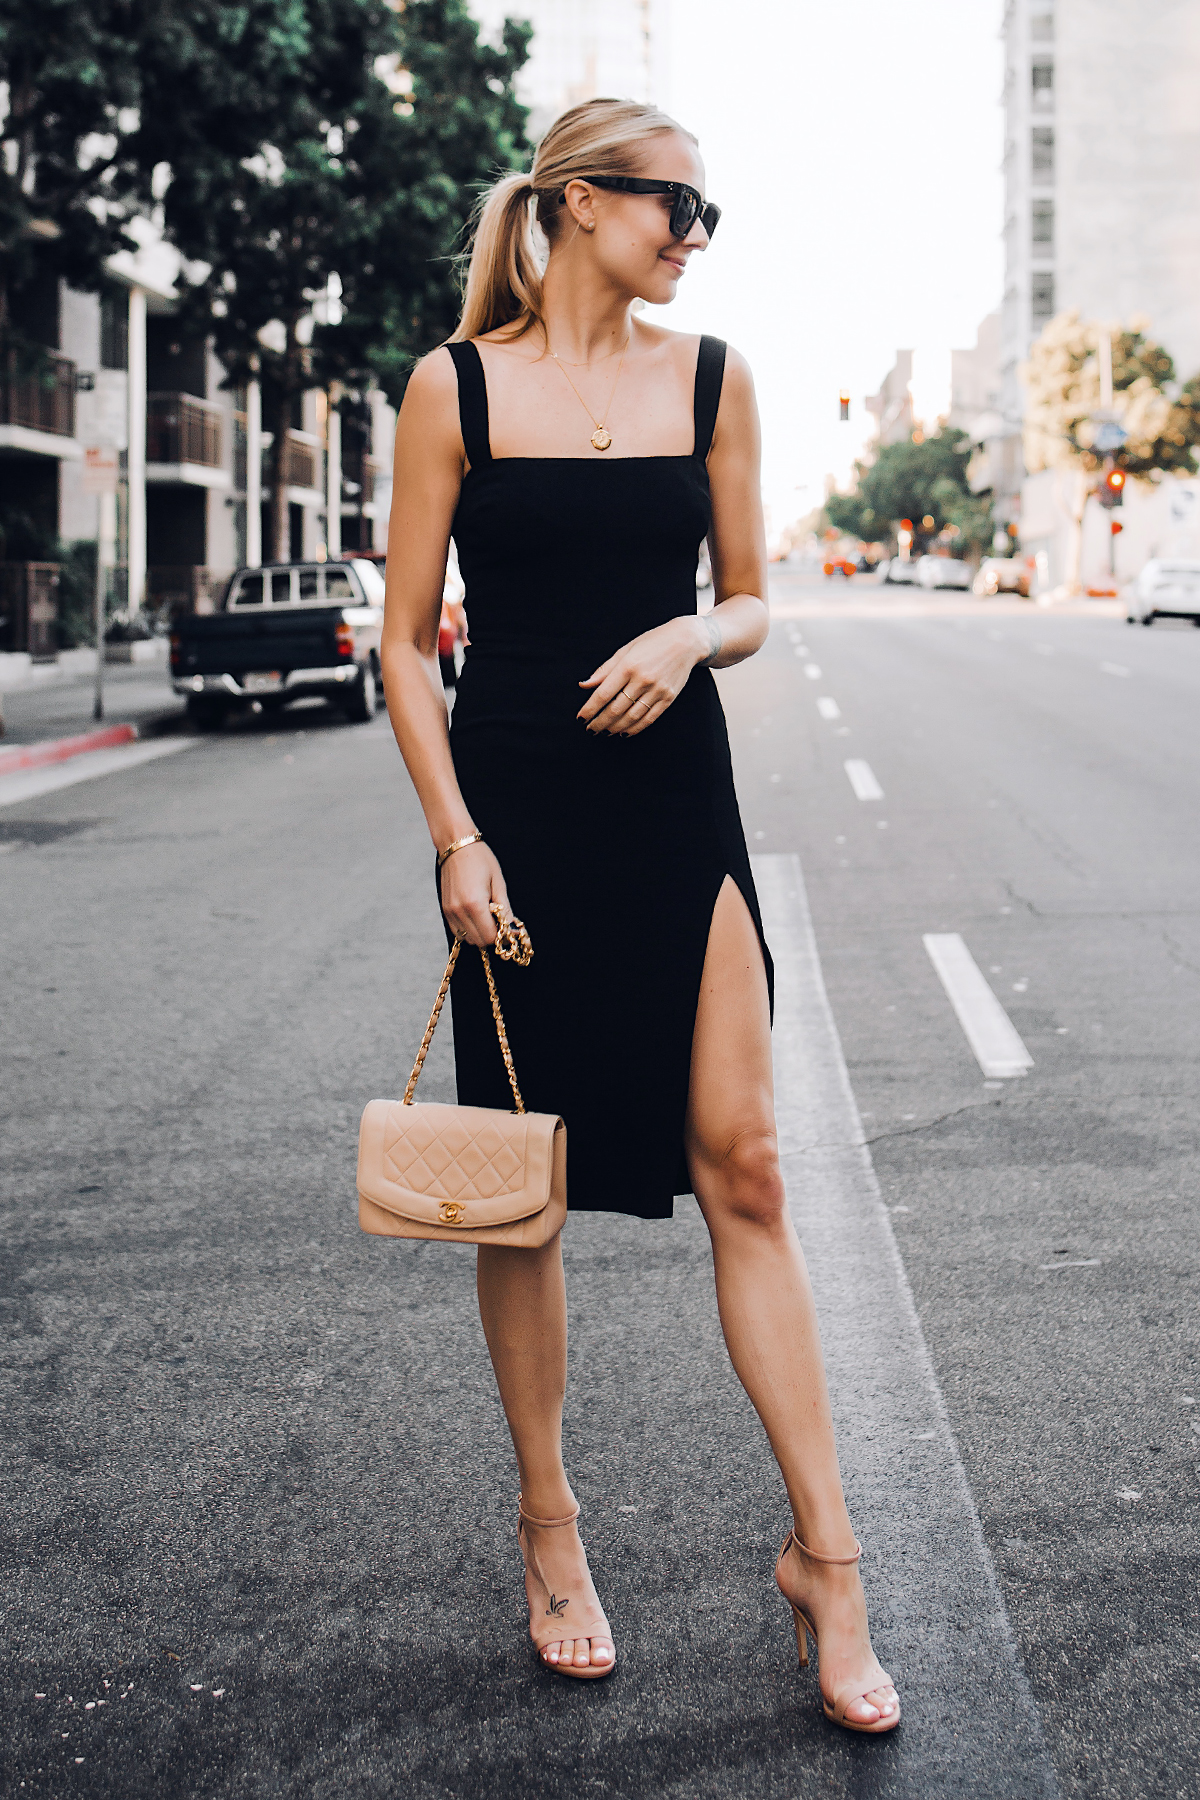 Blonde Woman Wearing Reformation Black Dress Tan Ankle Strap Heeled Sandals Chanel Tan Diana Handbag Gold Coin Necklace Black Celine Tilda Sunglasses Fashion Jackson San Diego Fashion Blogger Street Style